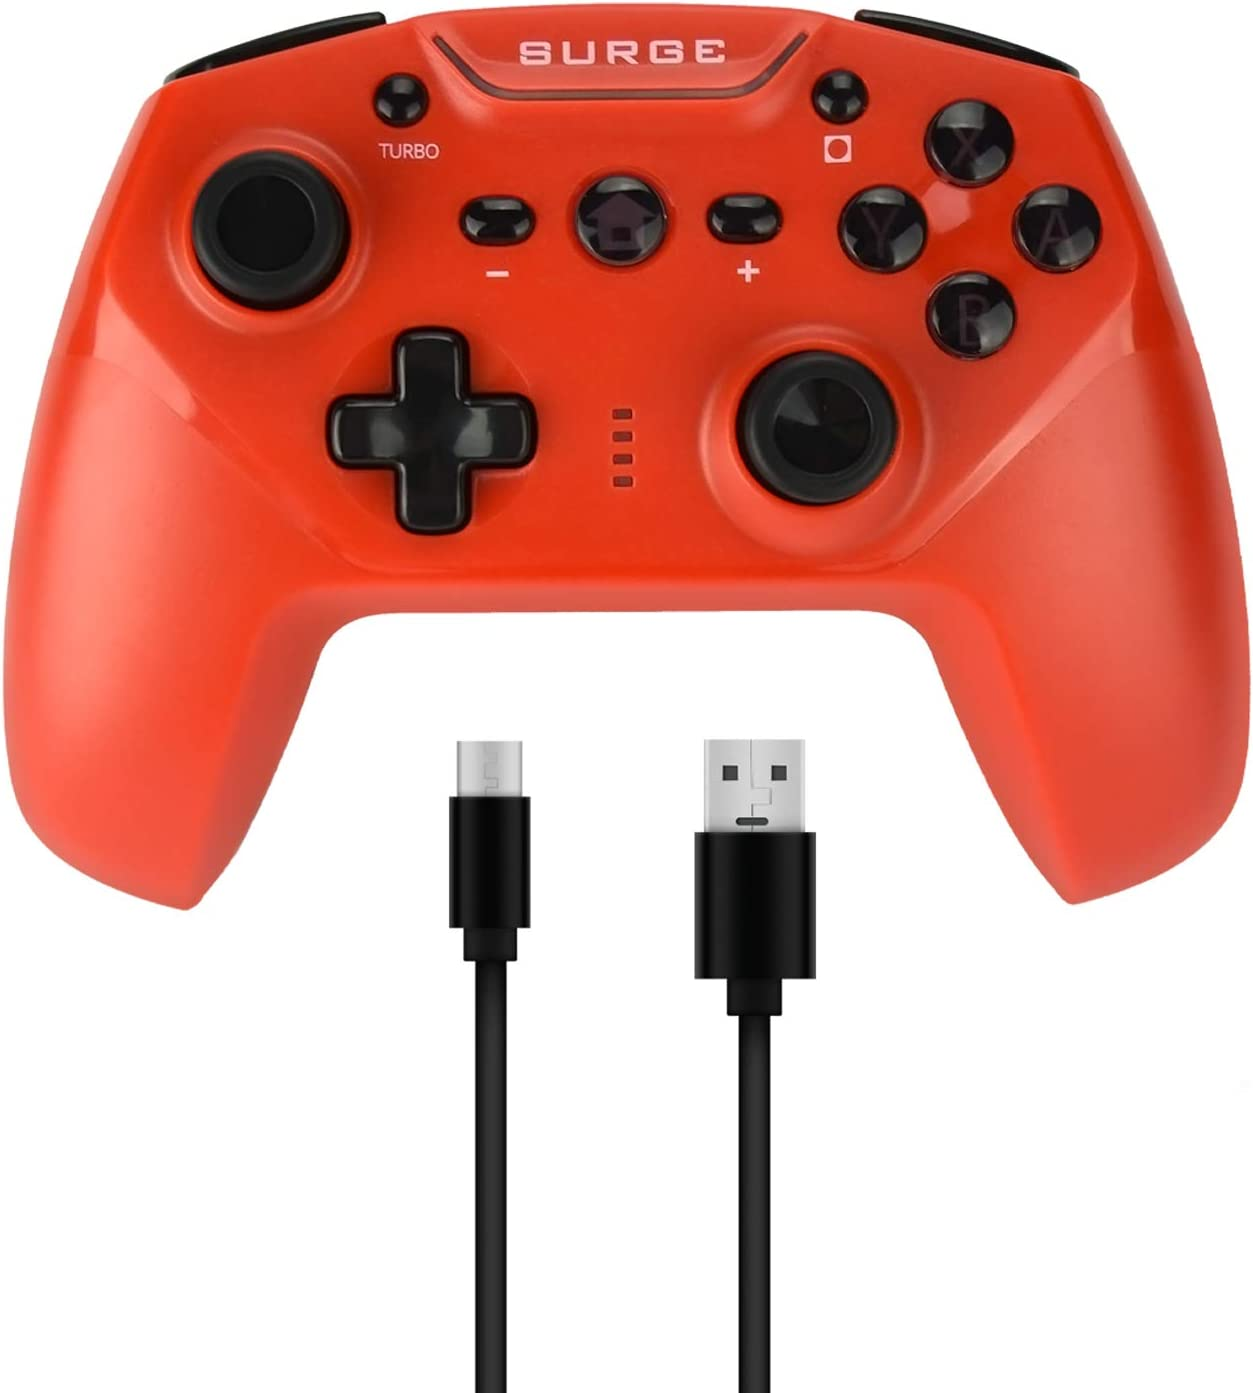 Surge Switchpad Pro Wireless Controller For Nintendo Switch   Red   Nintendo Switch by By          Surge